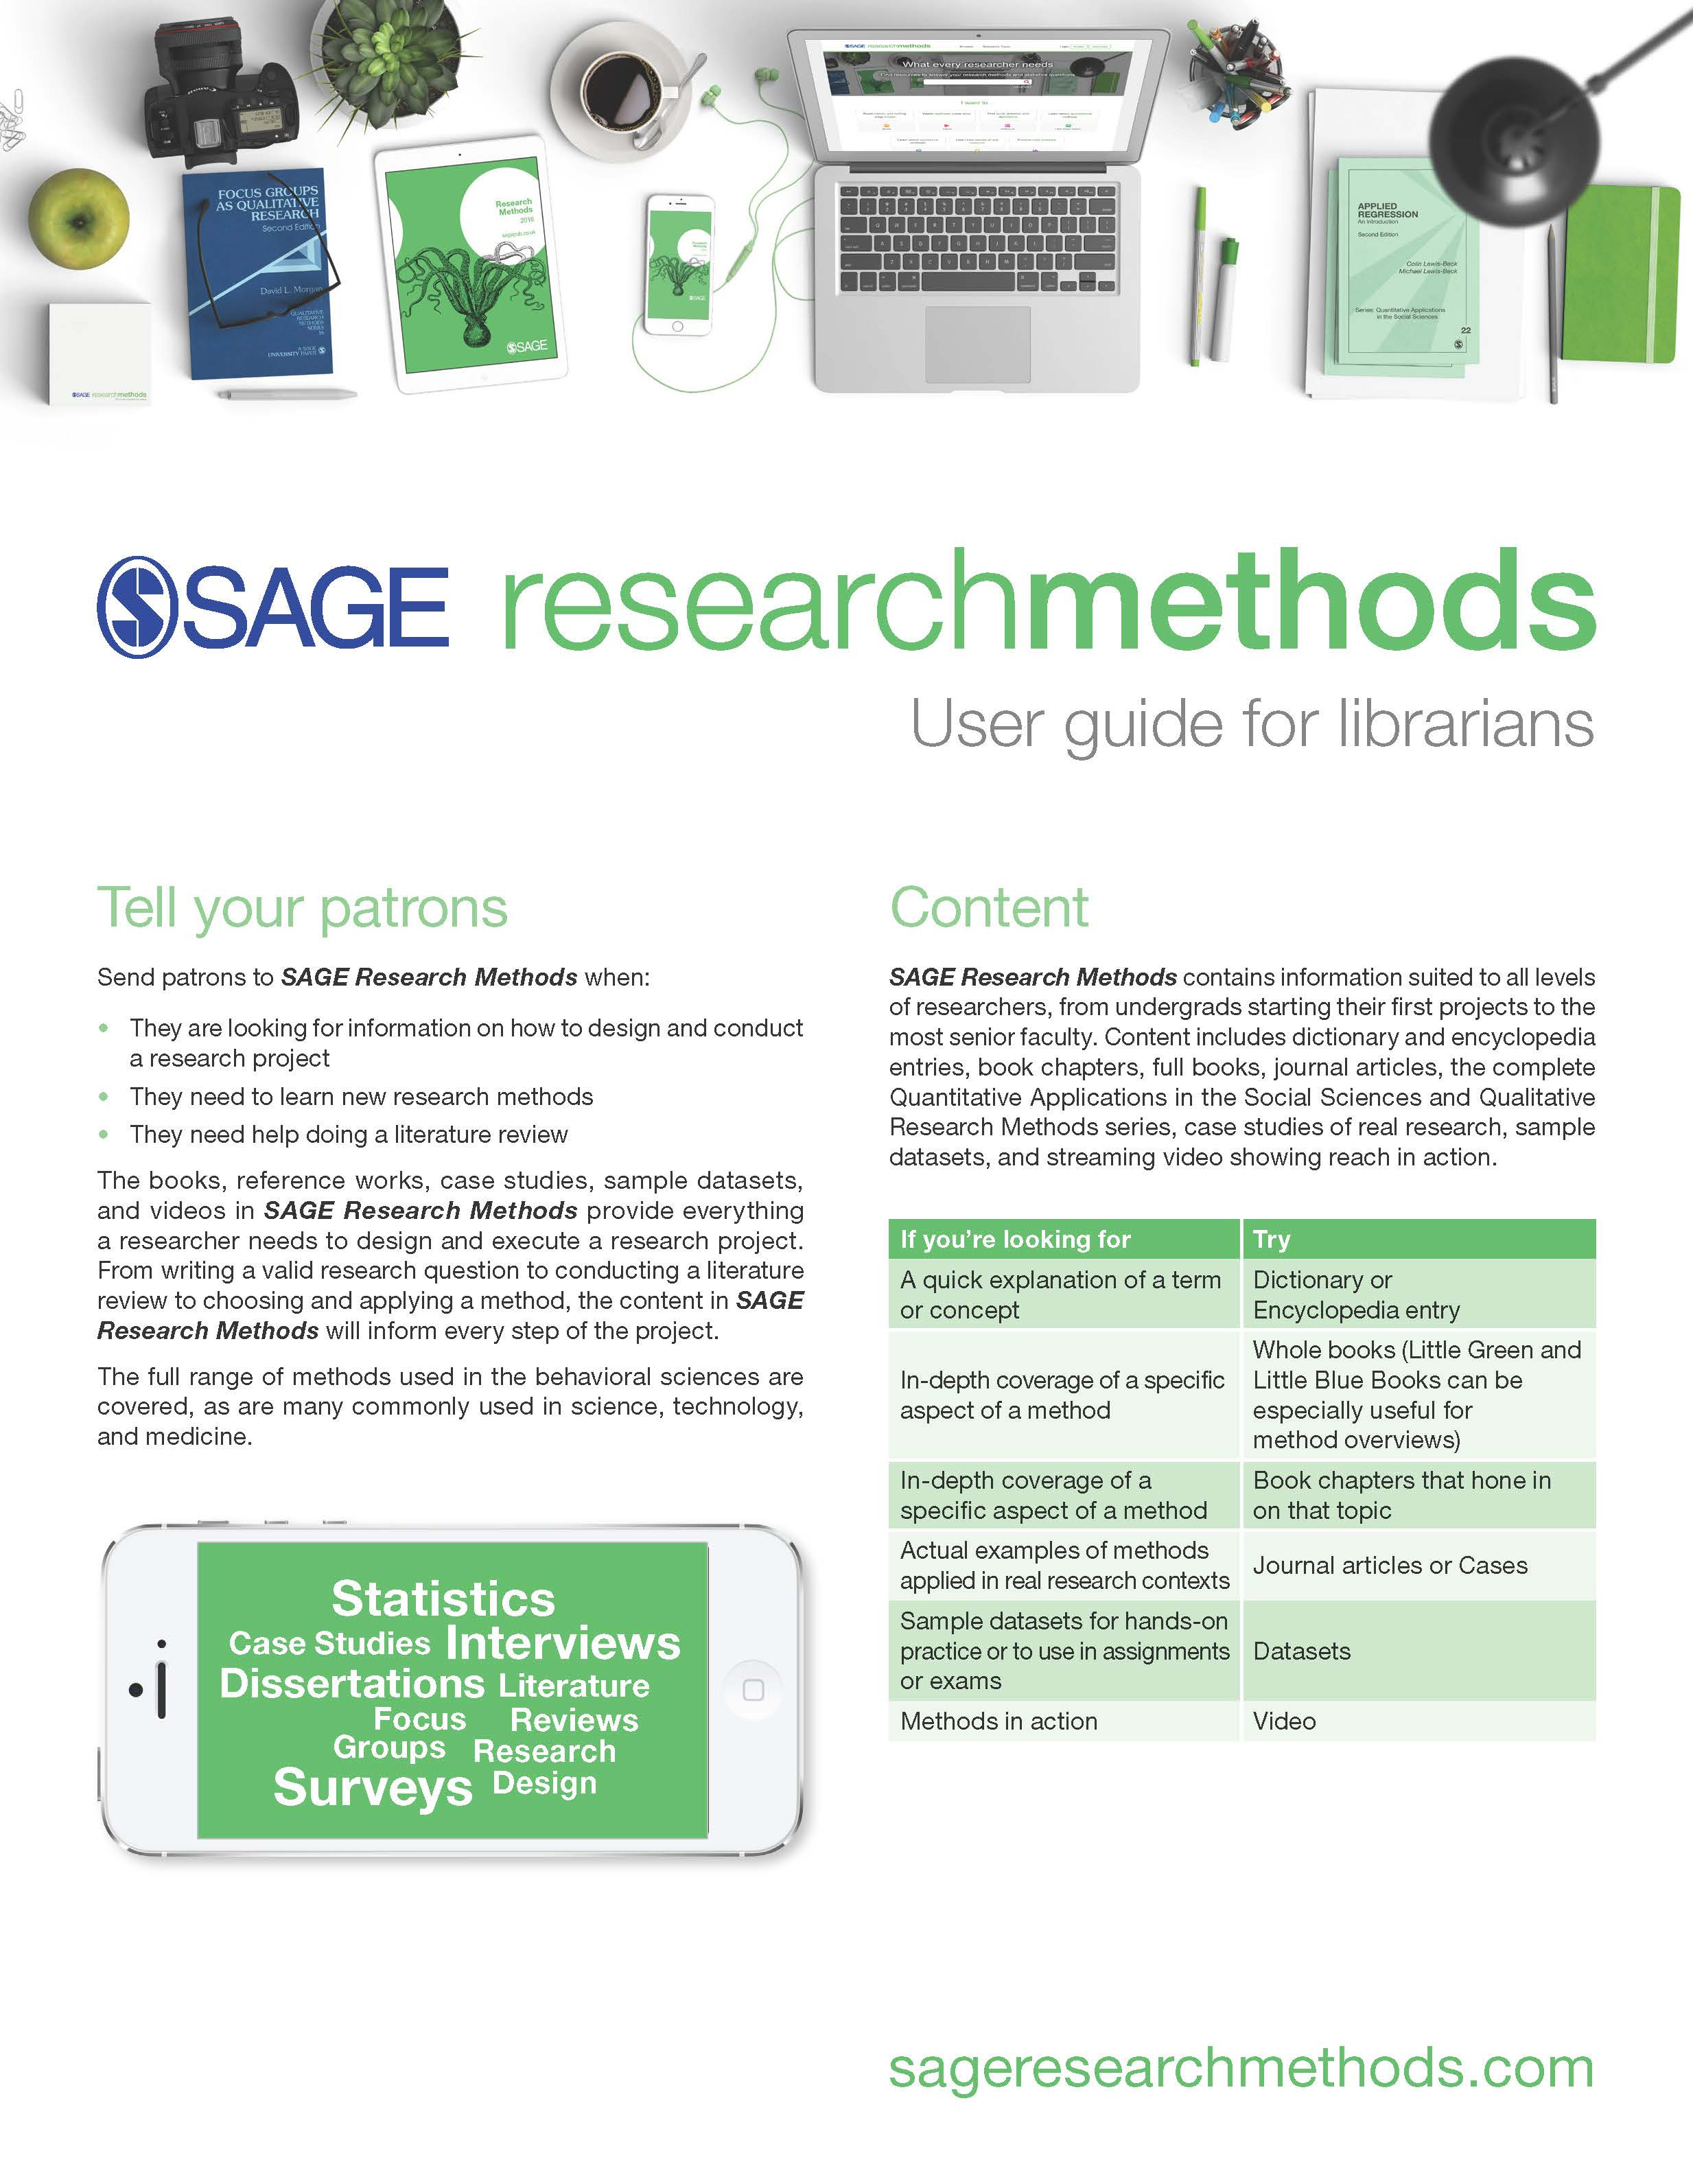 SAGE Research Methods for Librarians